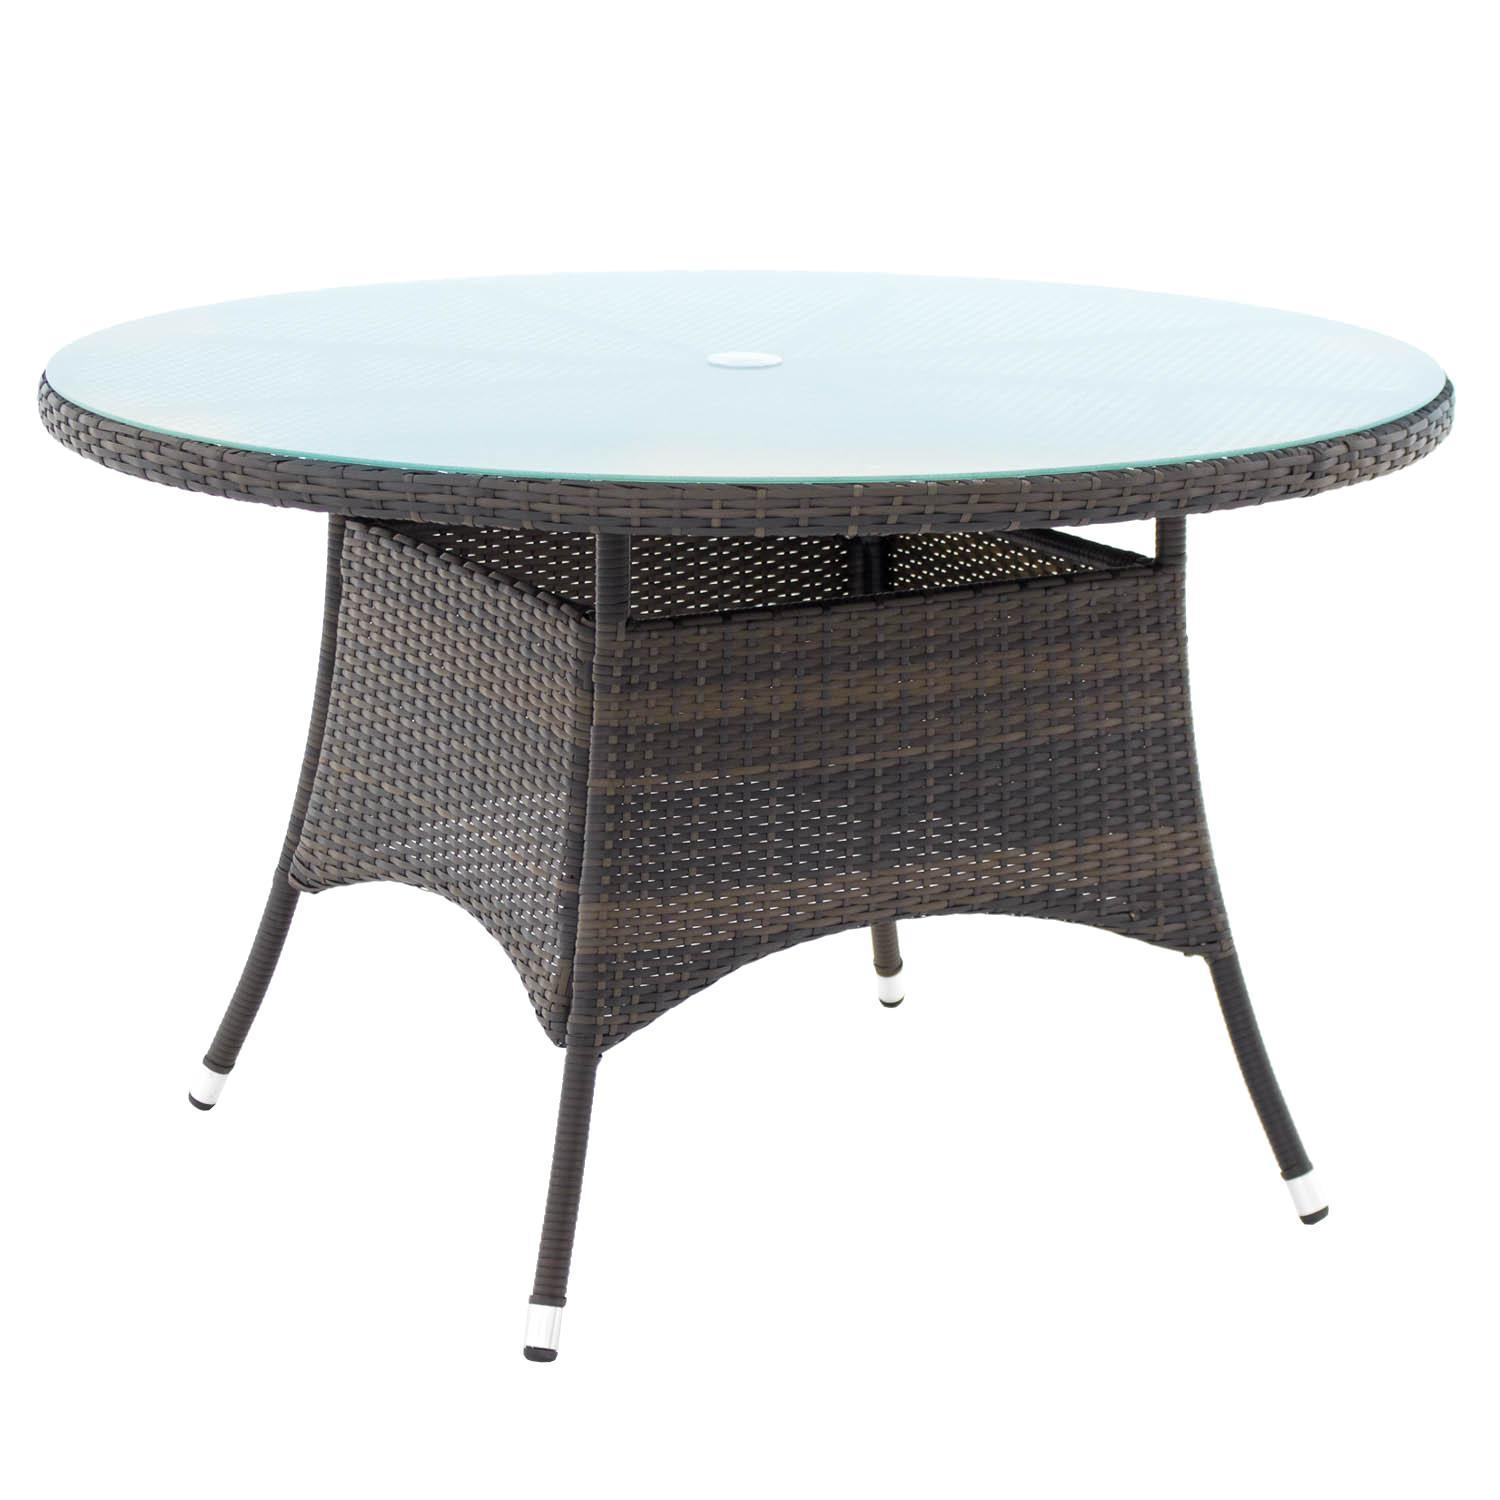 gentilly 48 inch round wicker patio dining table by lakeview outdoor designs walmart com